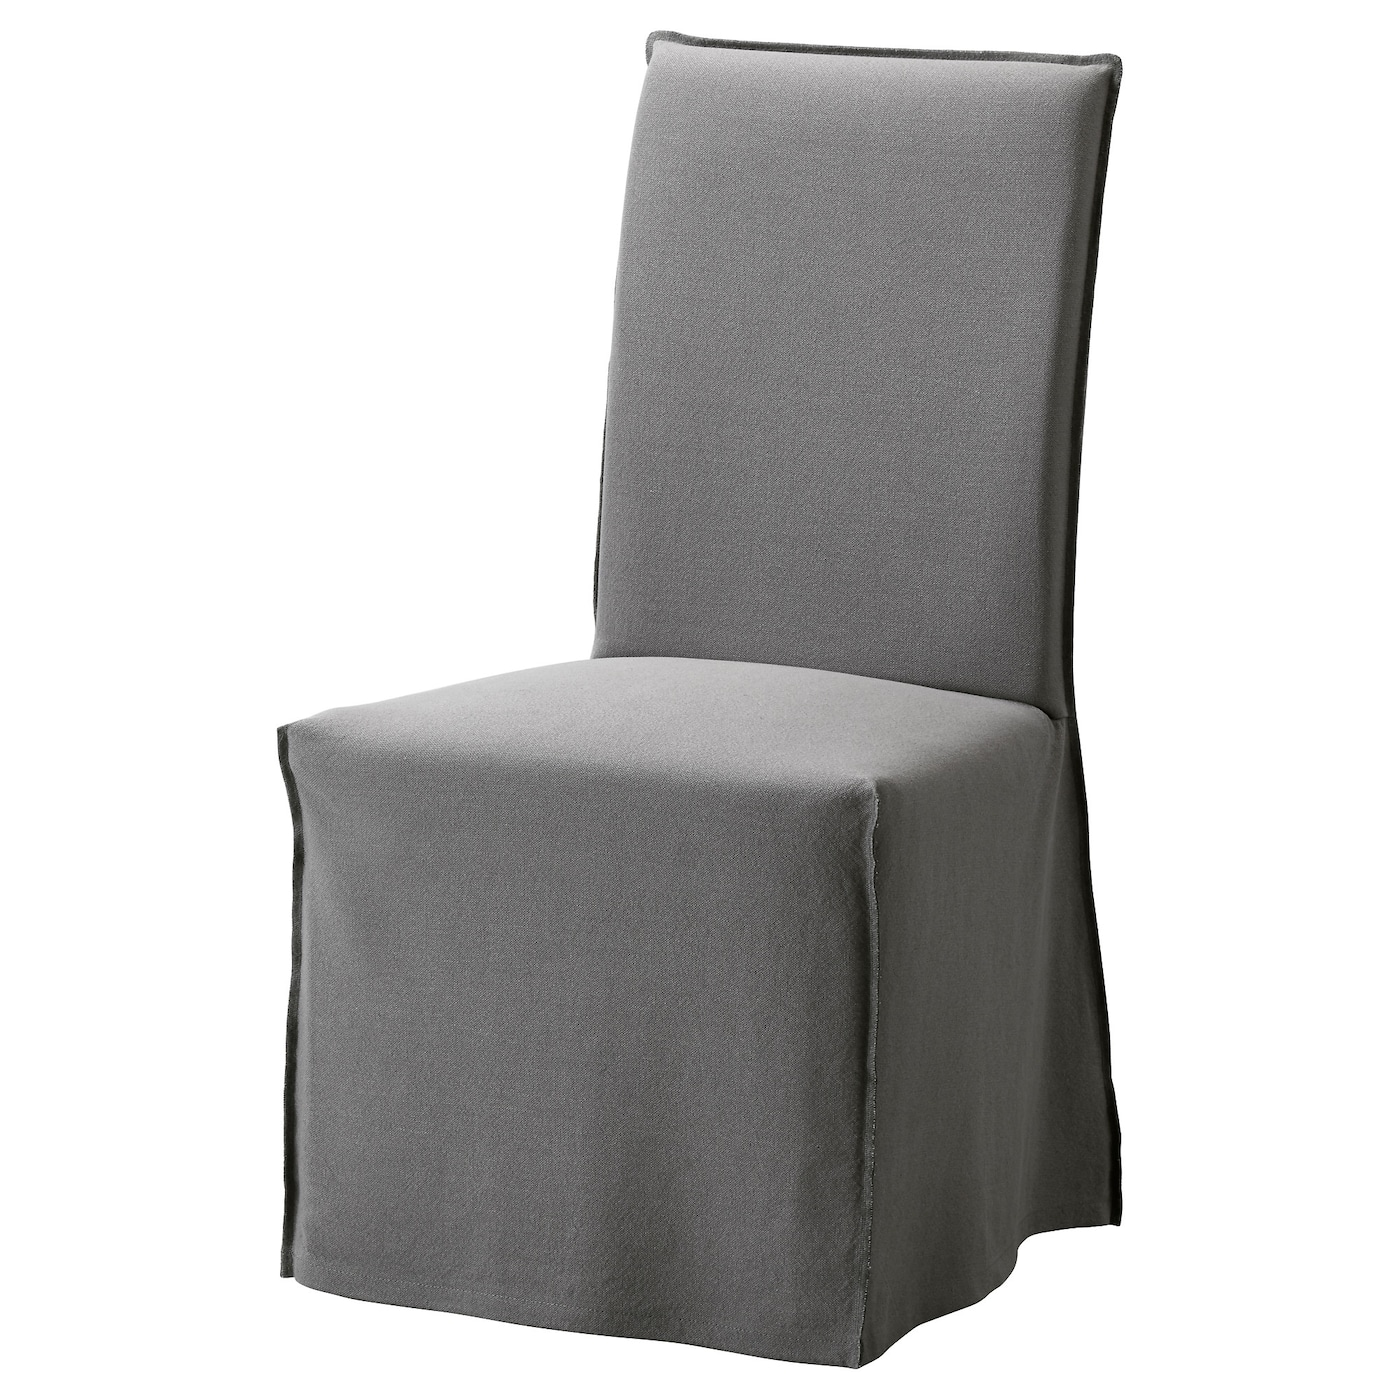 Chair Covers amp Dining Chair Covers IKEA : henriksdal chair cover long risane grey0367819pe549325s5 from www.ikea.com size 2000 x 2000 jpeg 748kB